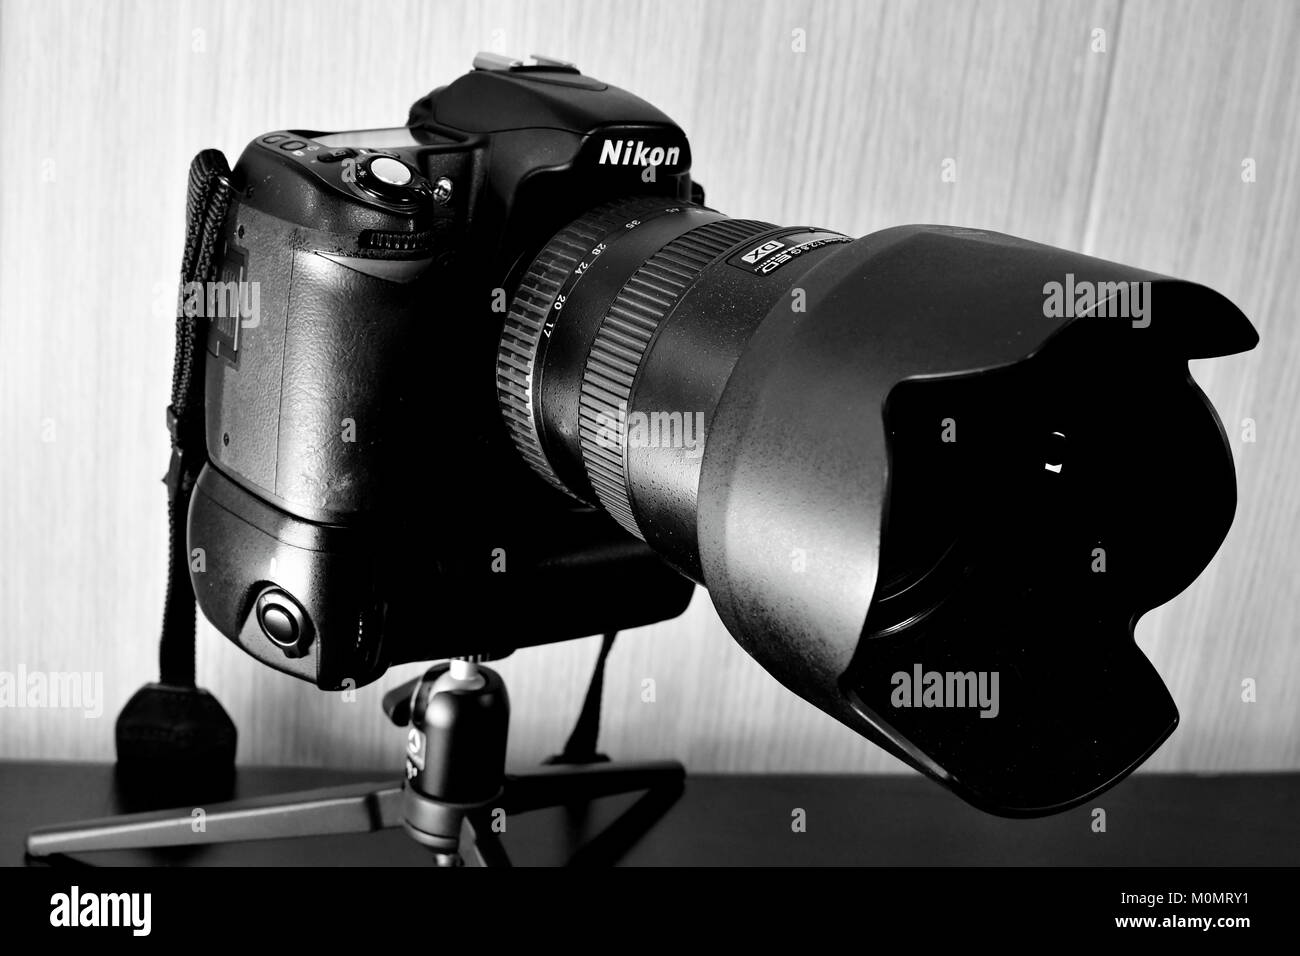 Nikon DSLR D80 and battery pack and Lenses on display and Christmas decorations as well - Stock Image